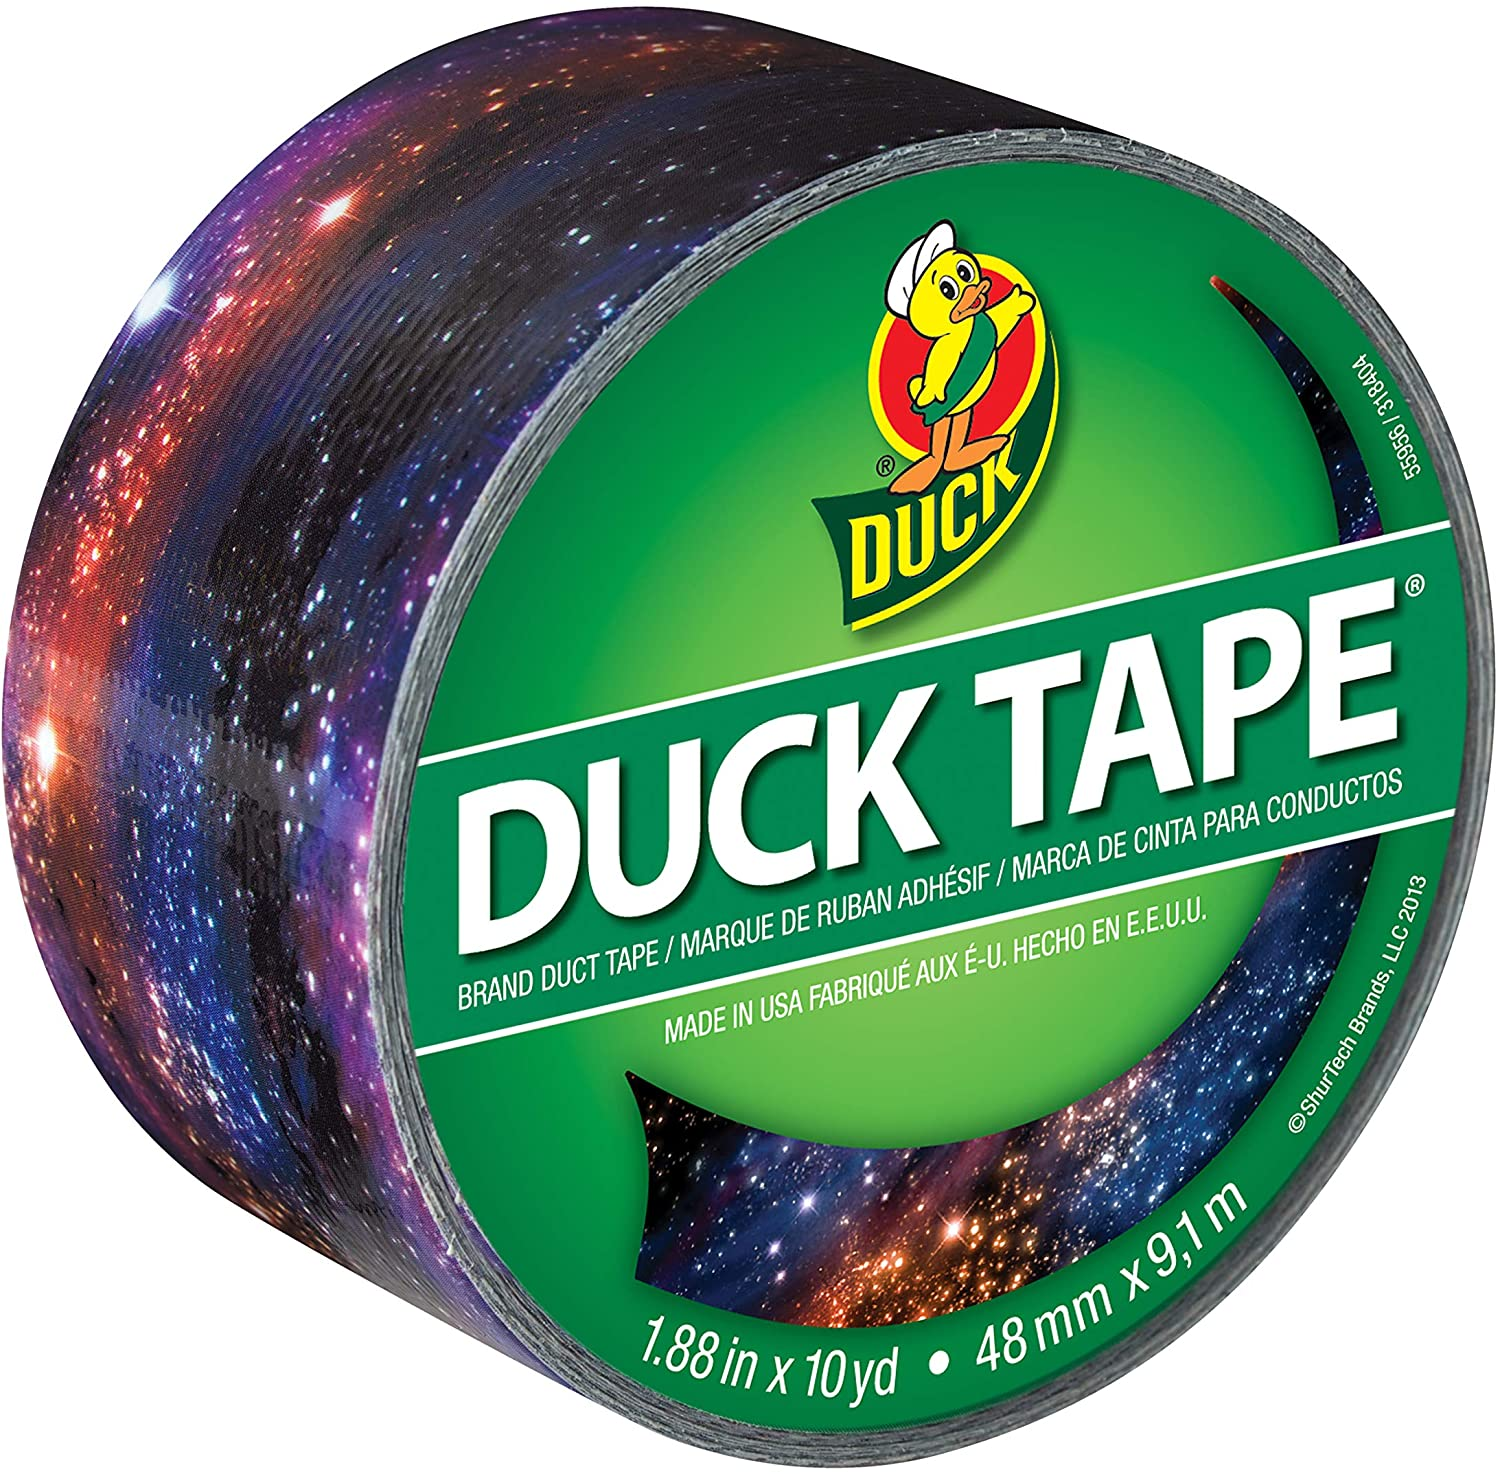 Duck, Galaxy, Brand 283039 Printed Duct Tape, 1.88 Inches x 10 Yards, Single Roll